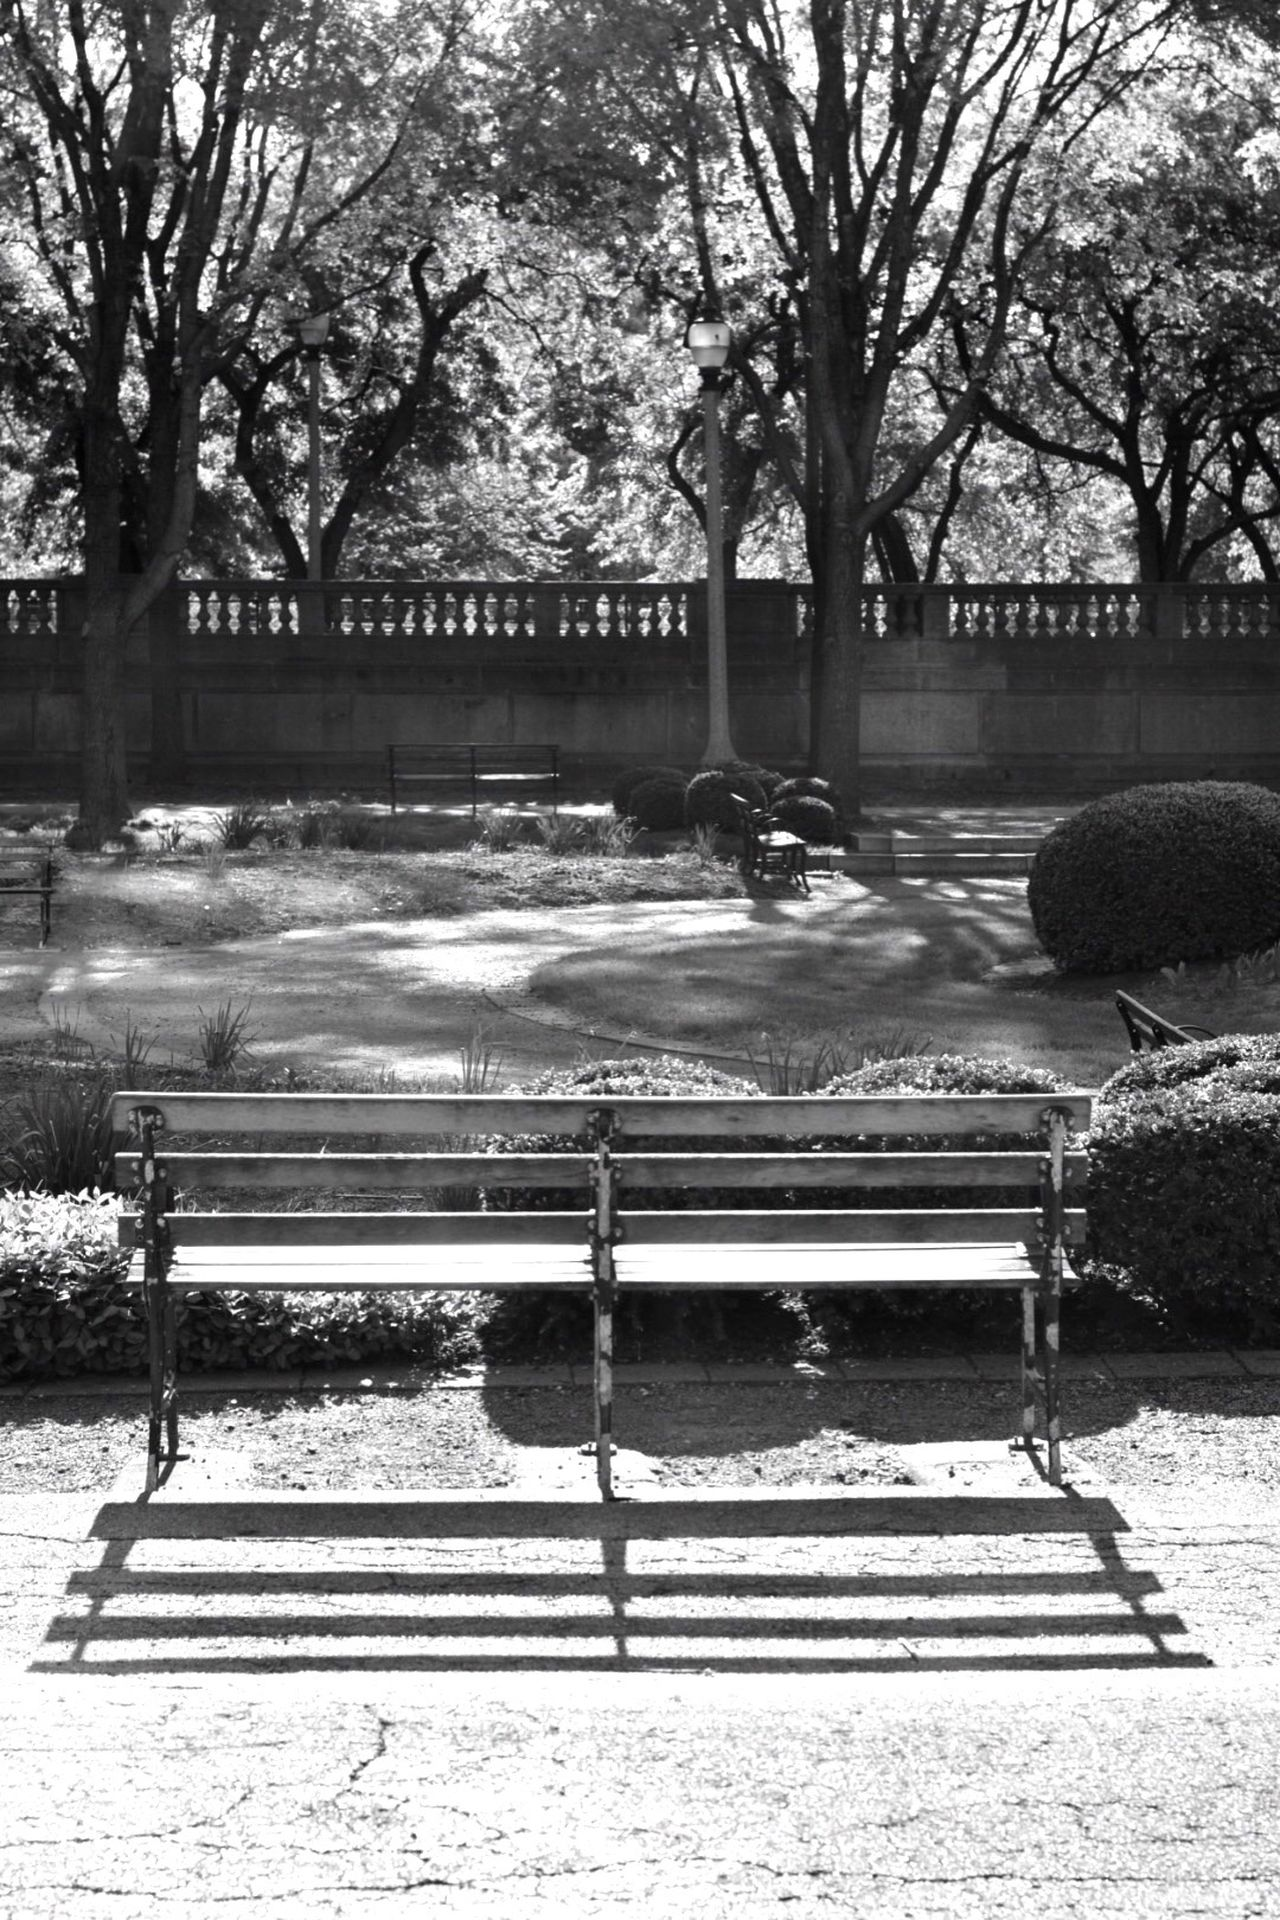 Bench in the Park Outdoors No People The Street Photographer - 2017 EyeEm Awards Blackandwhite Neighborhood Map